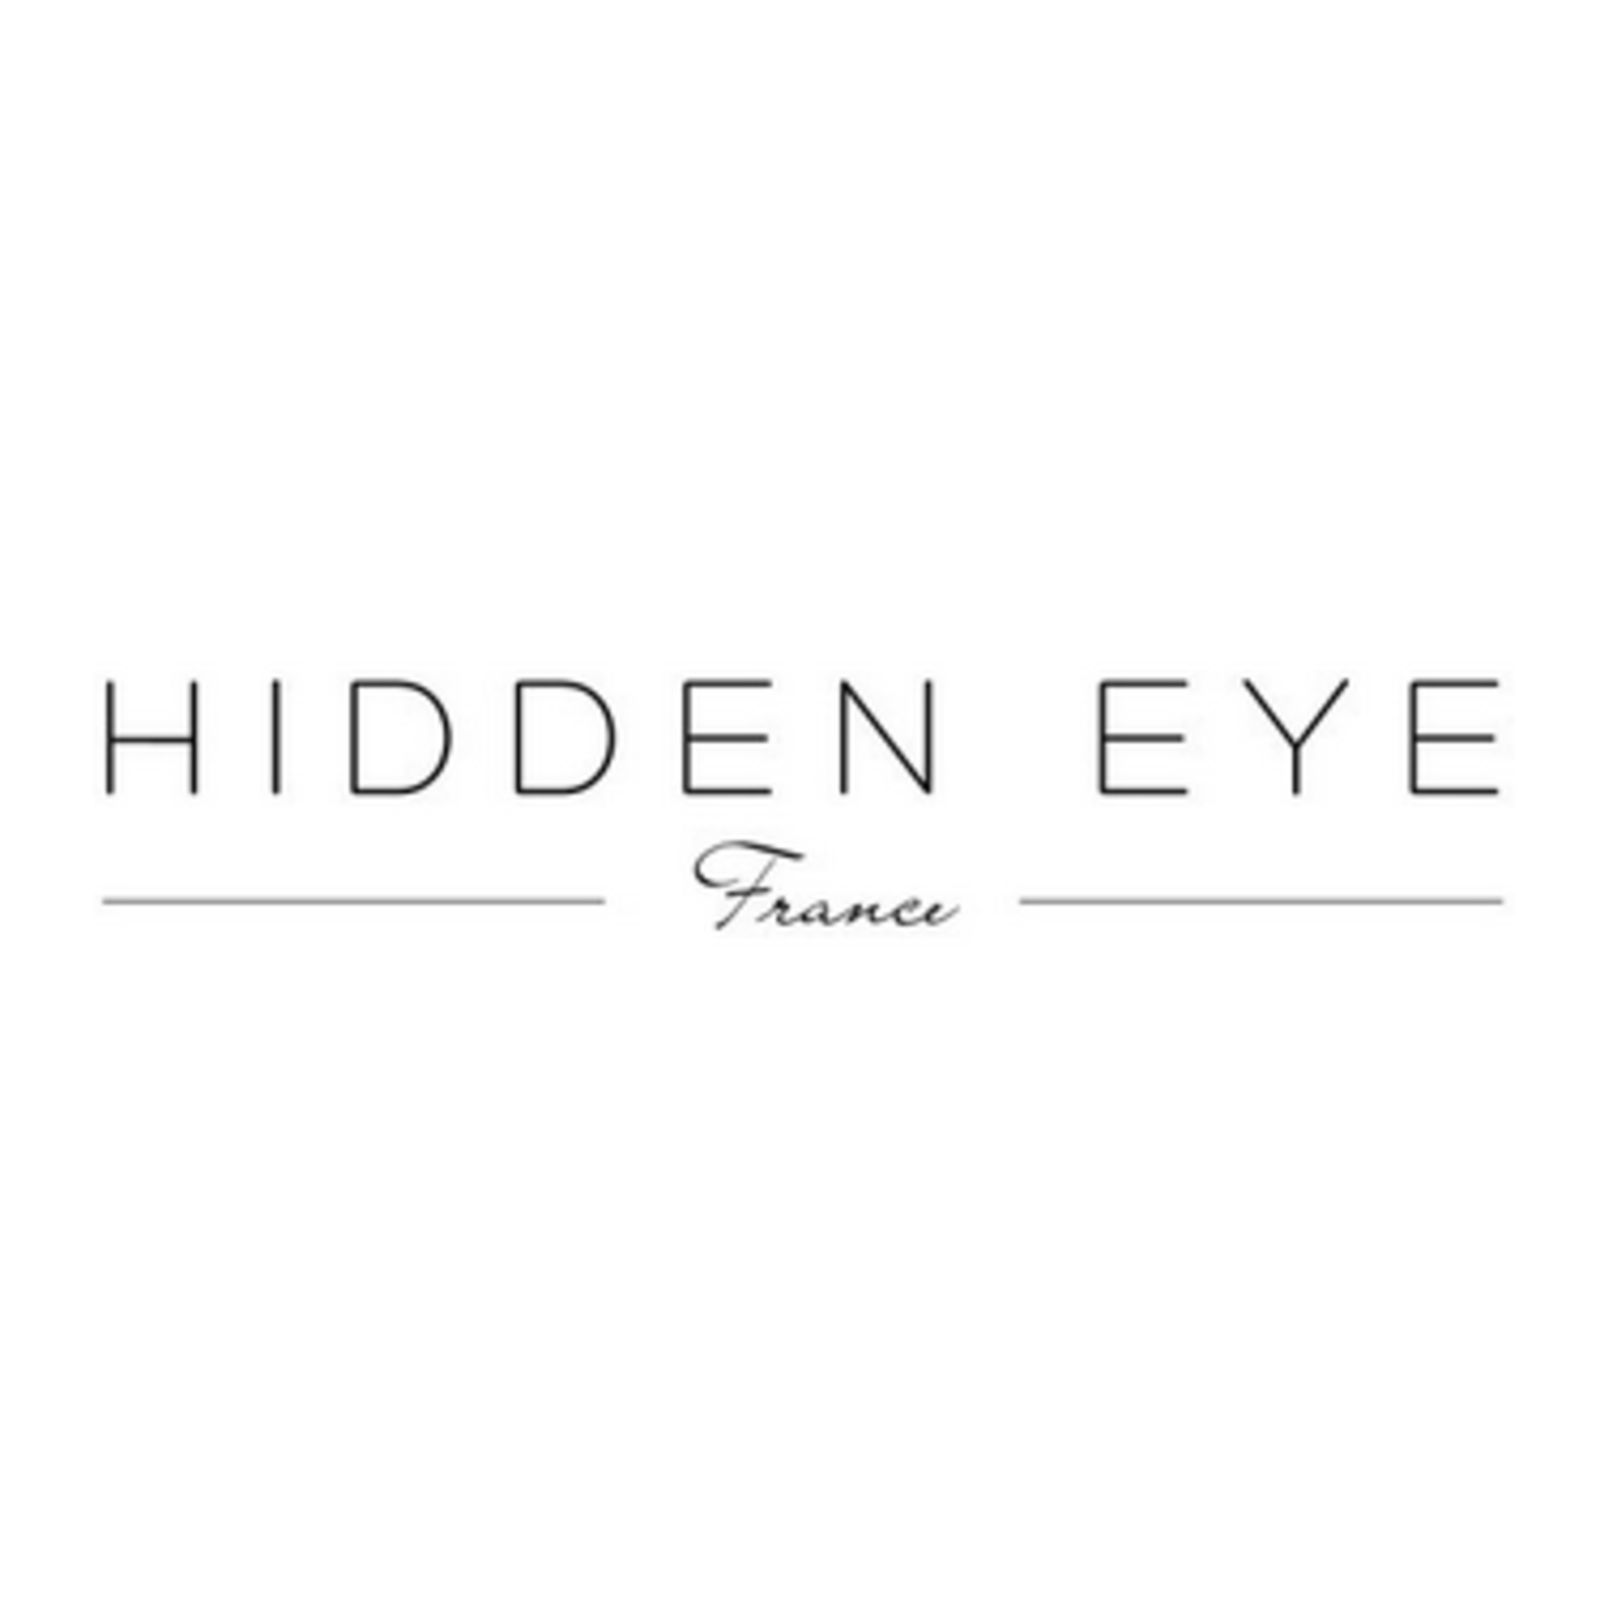 HIDDEN EYE